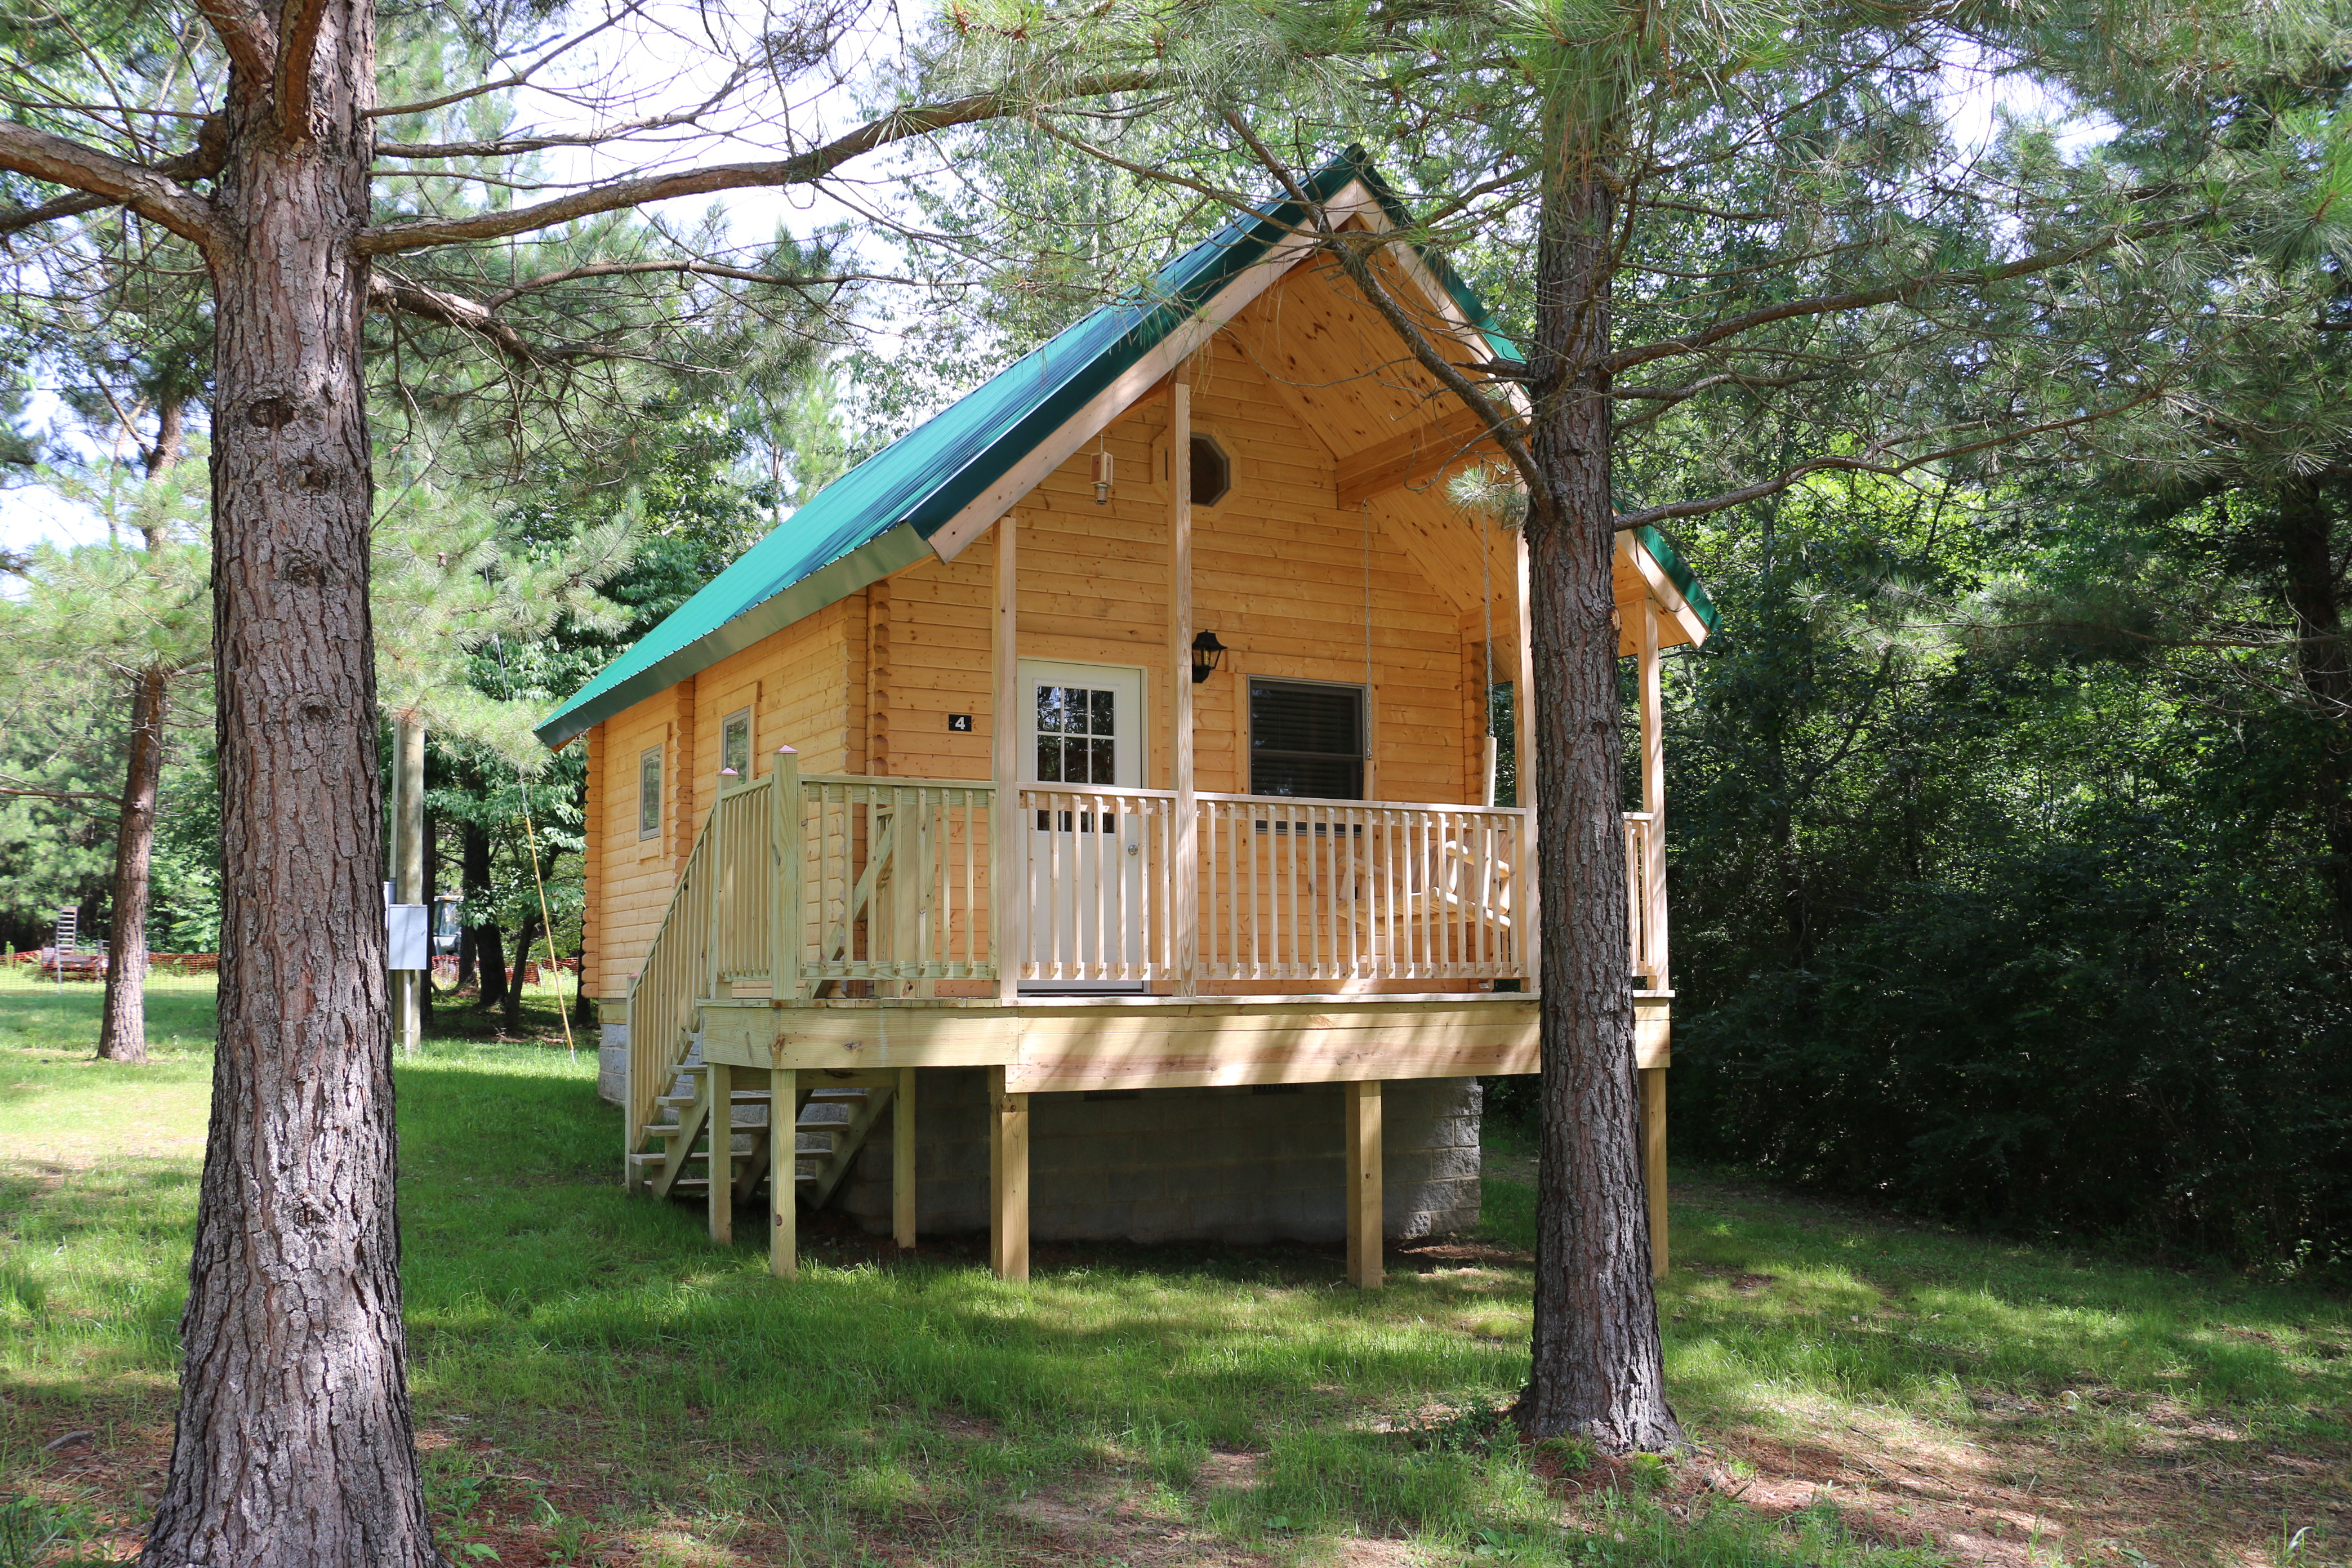 georgias s hiker hammock operated the saints georgia photograph hostel dahlonega is north robert ga in sutherland cabins near by